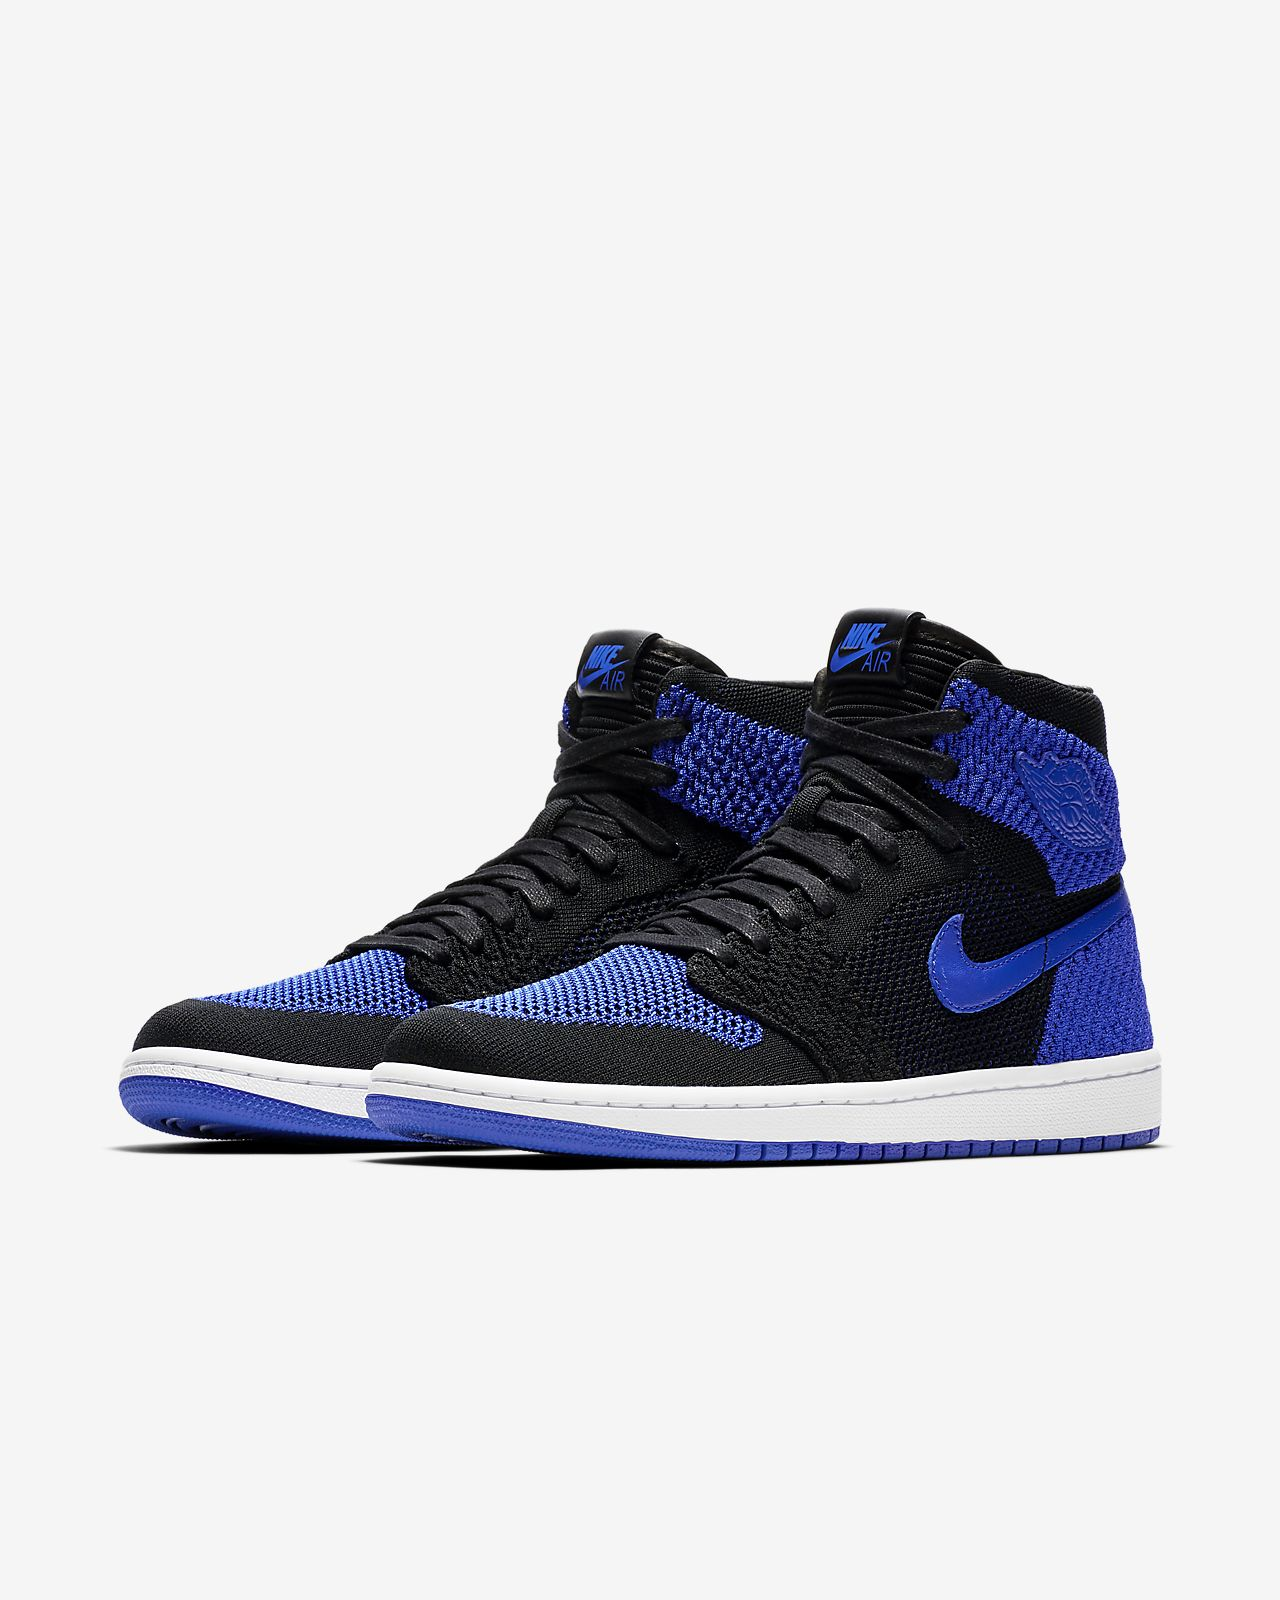 Pour Homme Retro 1 Flyknit High Air Chaussure Jordan ID29EHW